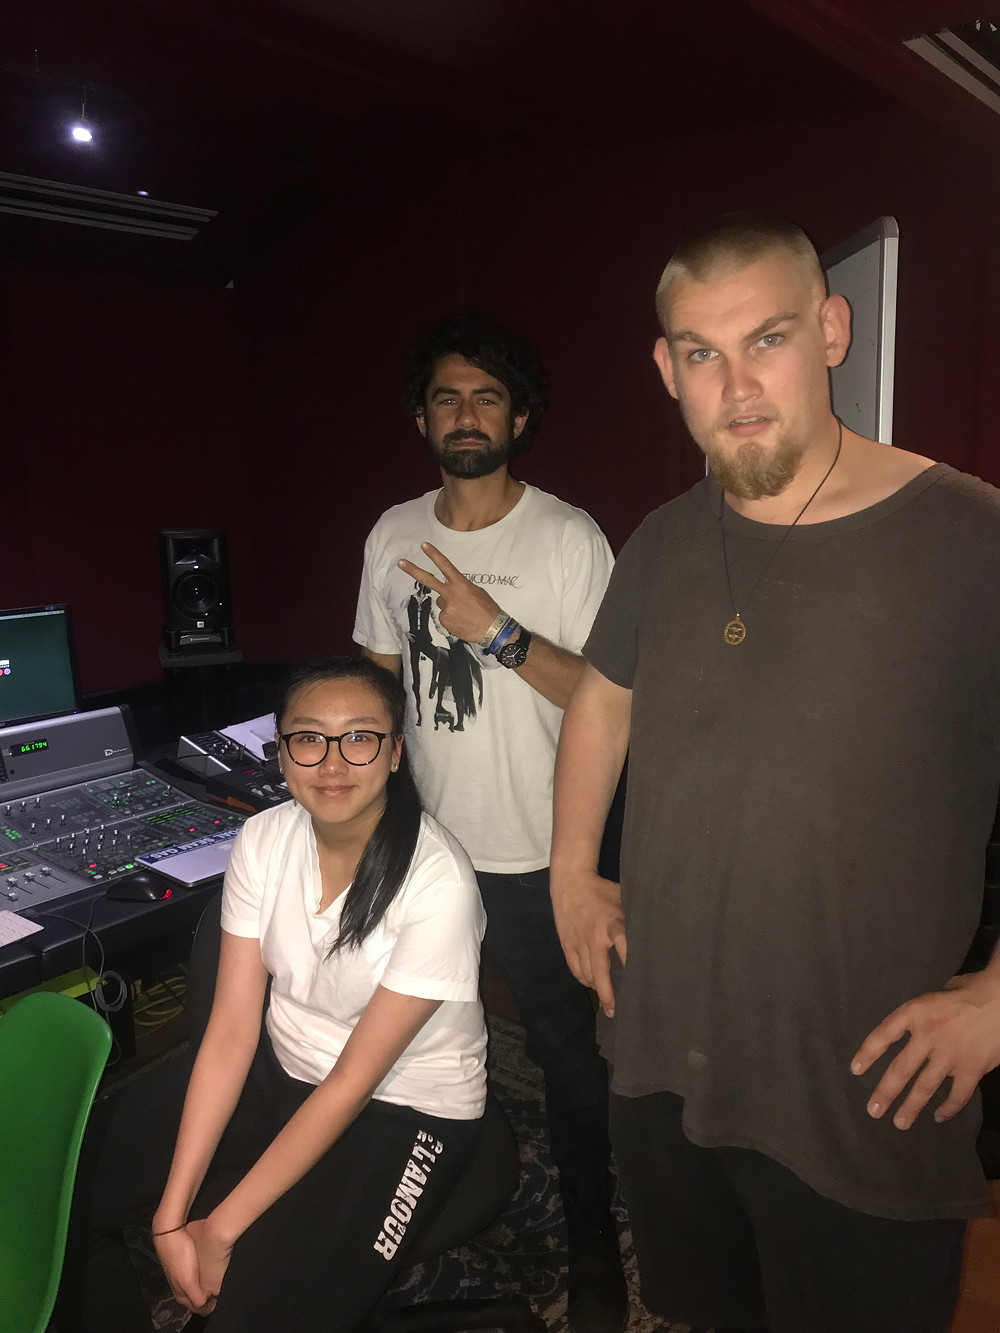 Our 'Second Chances' Film Audio team, Jo Hunyh, Angus Price, and myself